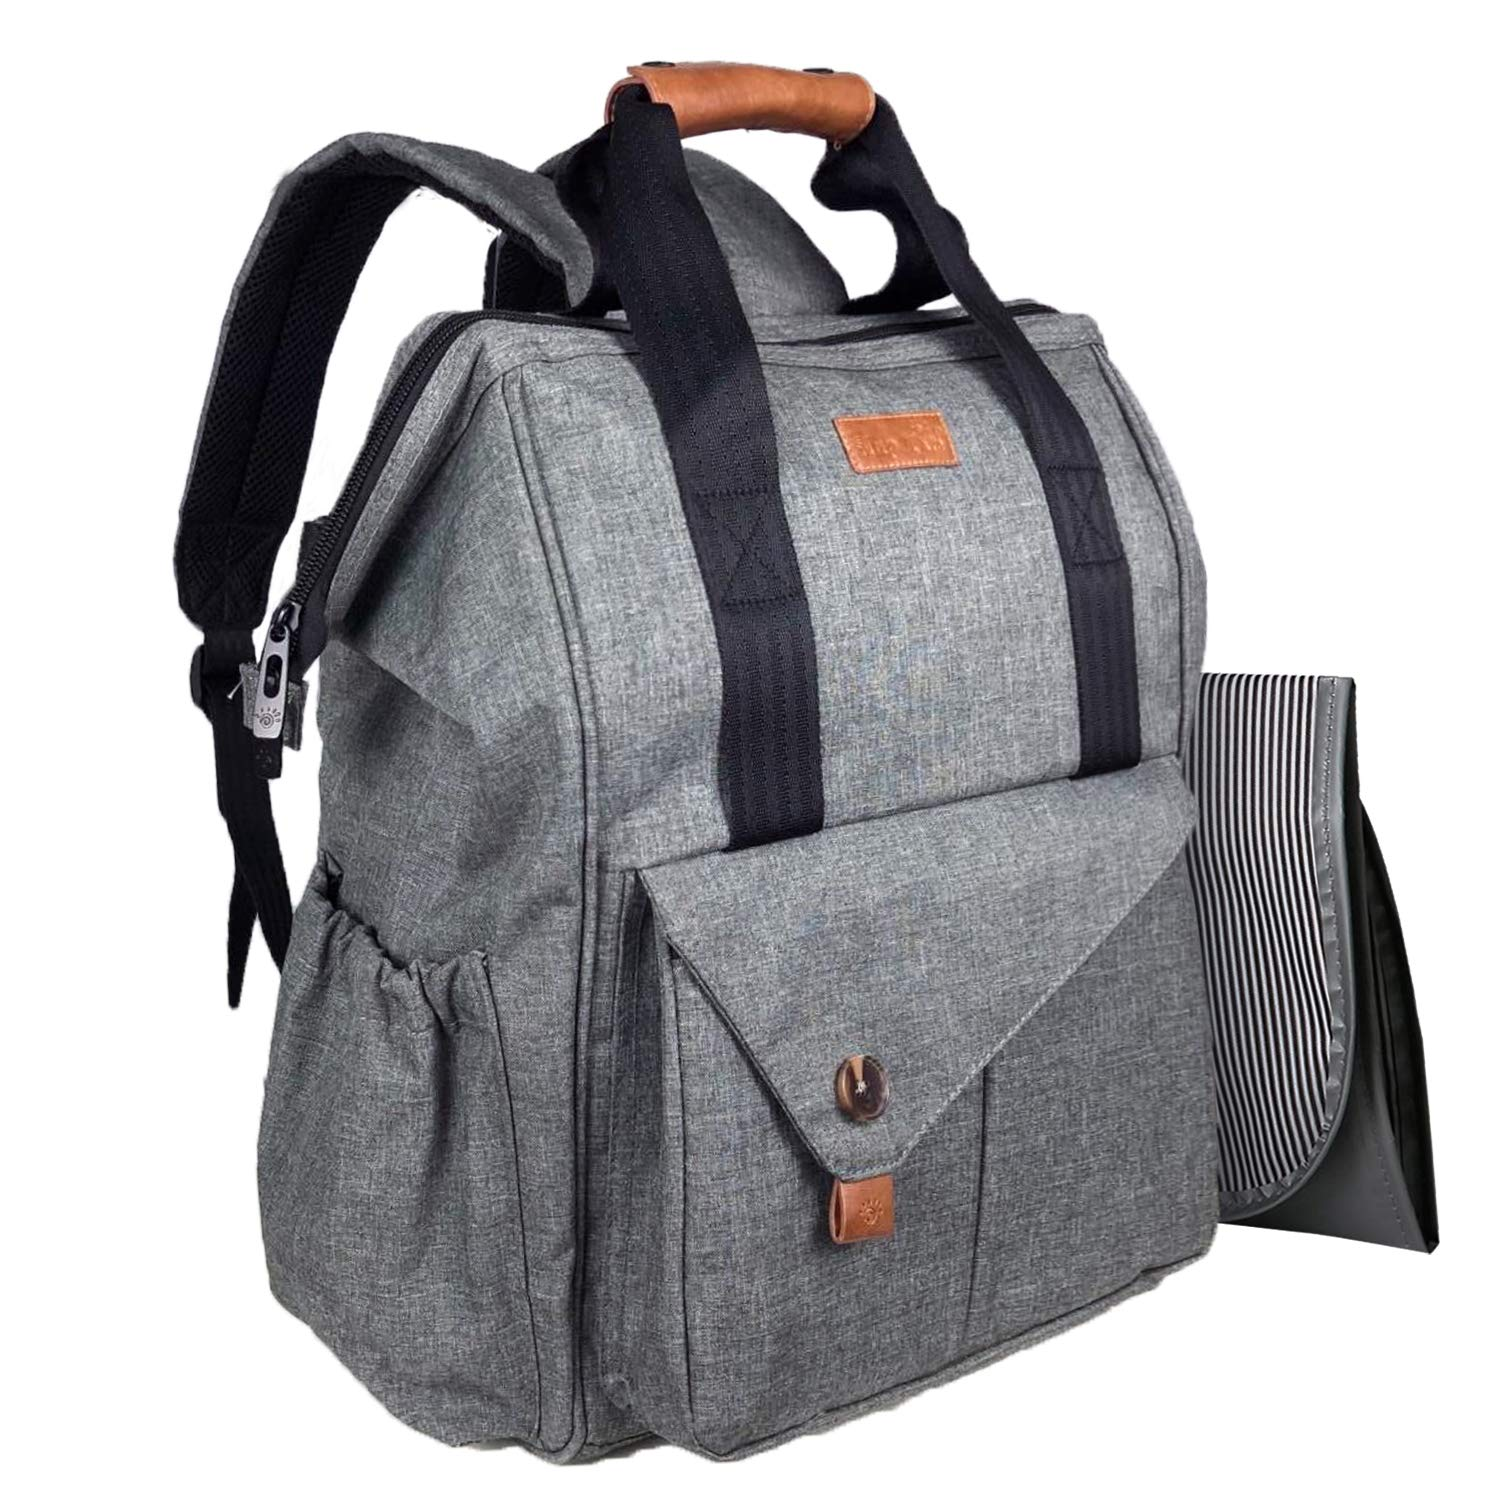 HapTim Multi-function Baby Diaper Bag Backpack Stroller Straps- Insulated Pockets- Changing Pad Included, Nylon Fabric Large Capacity Waterproof Nappy Changing Bag for Moms & Dads(Gray-5279)